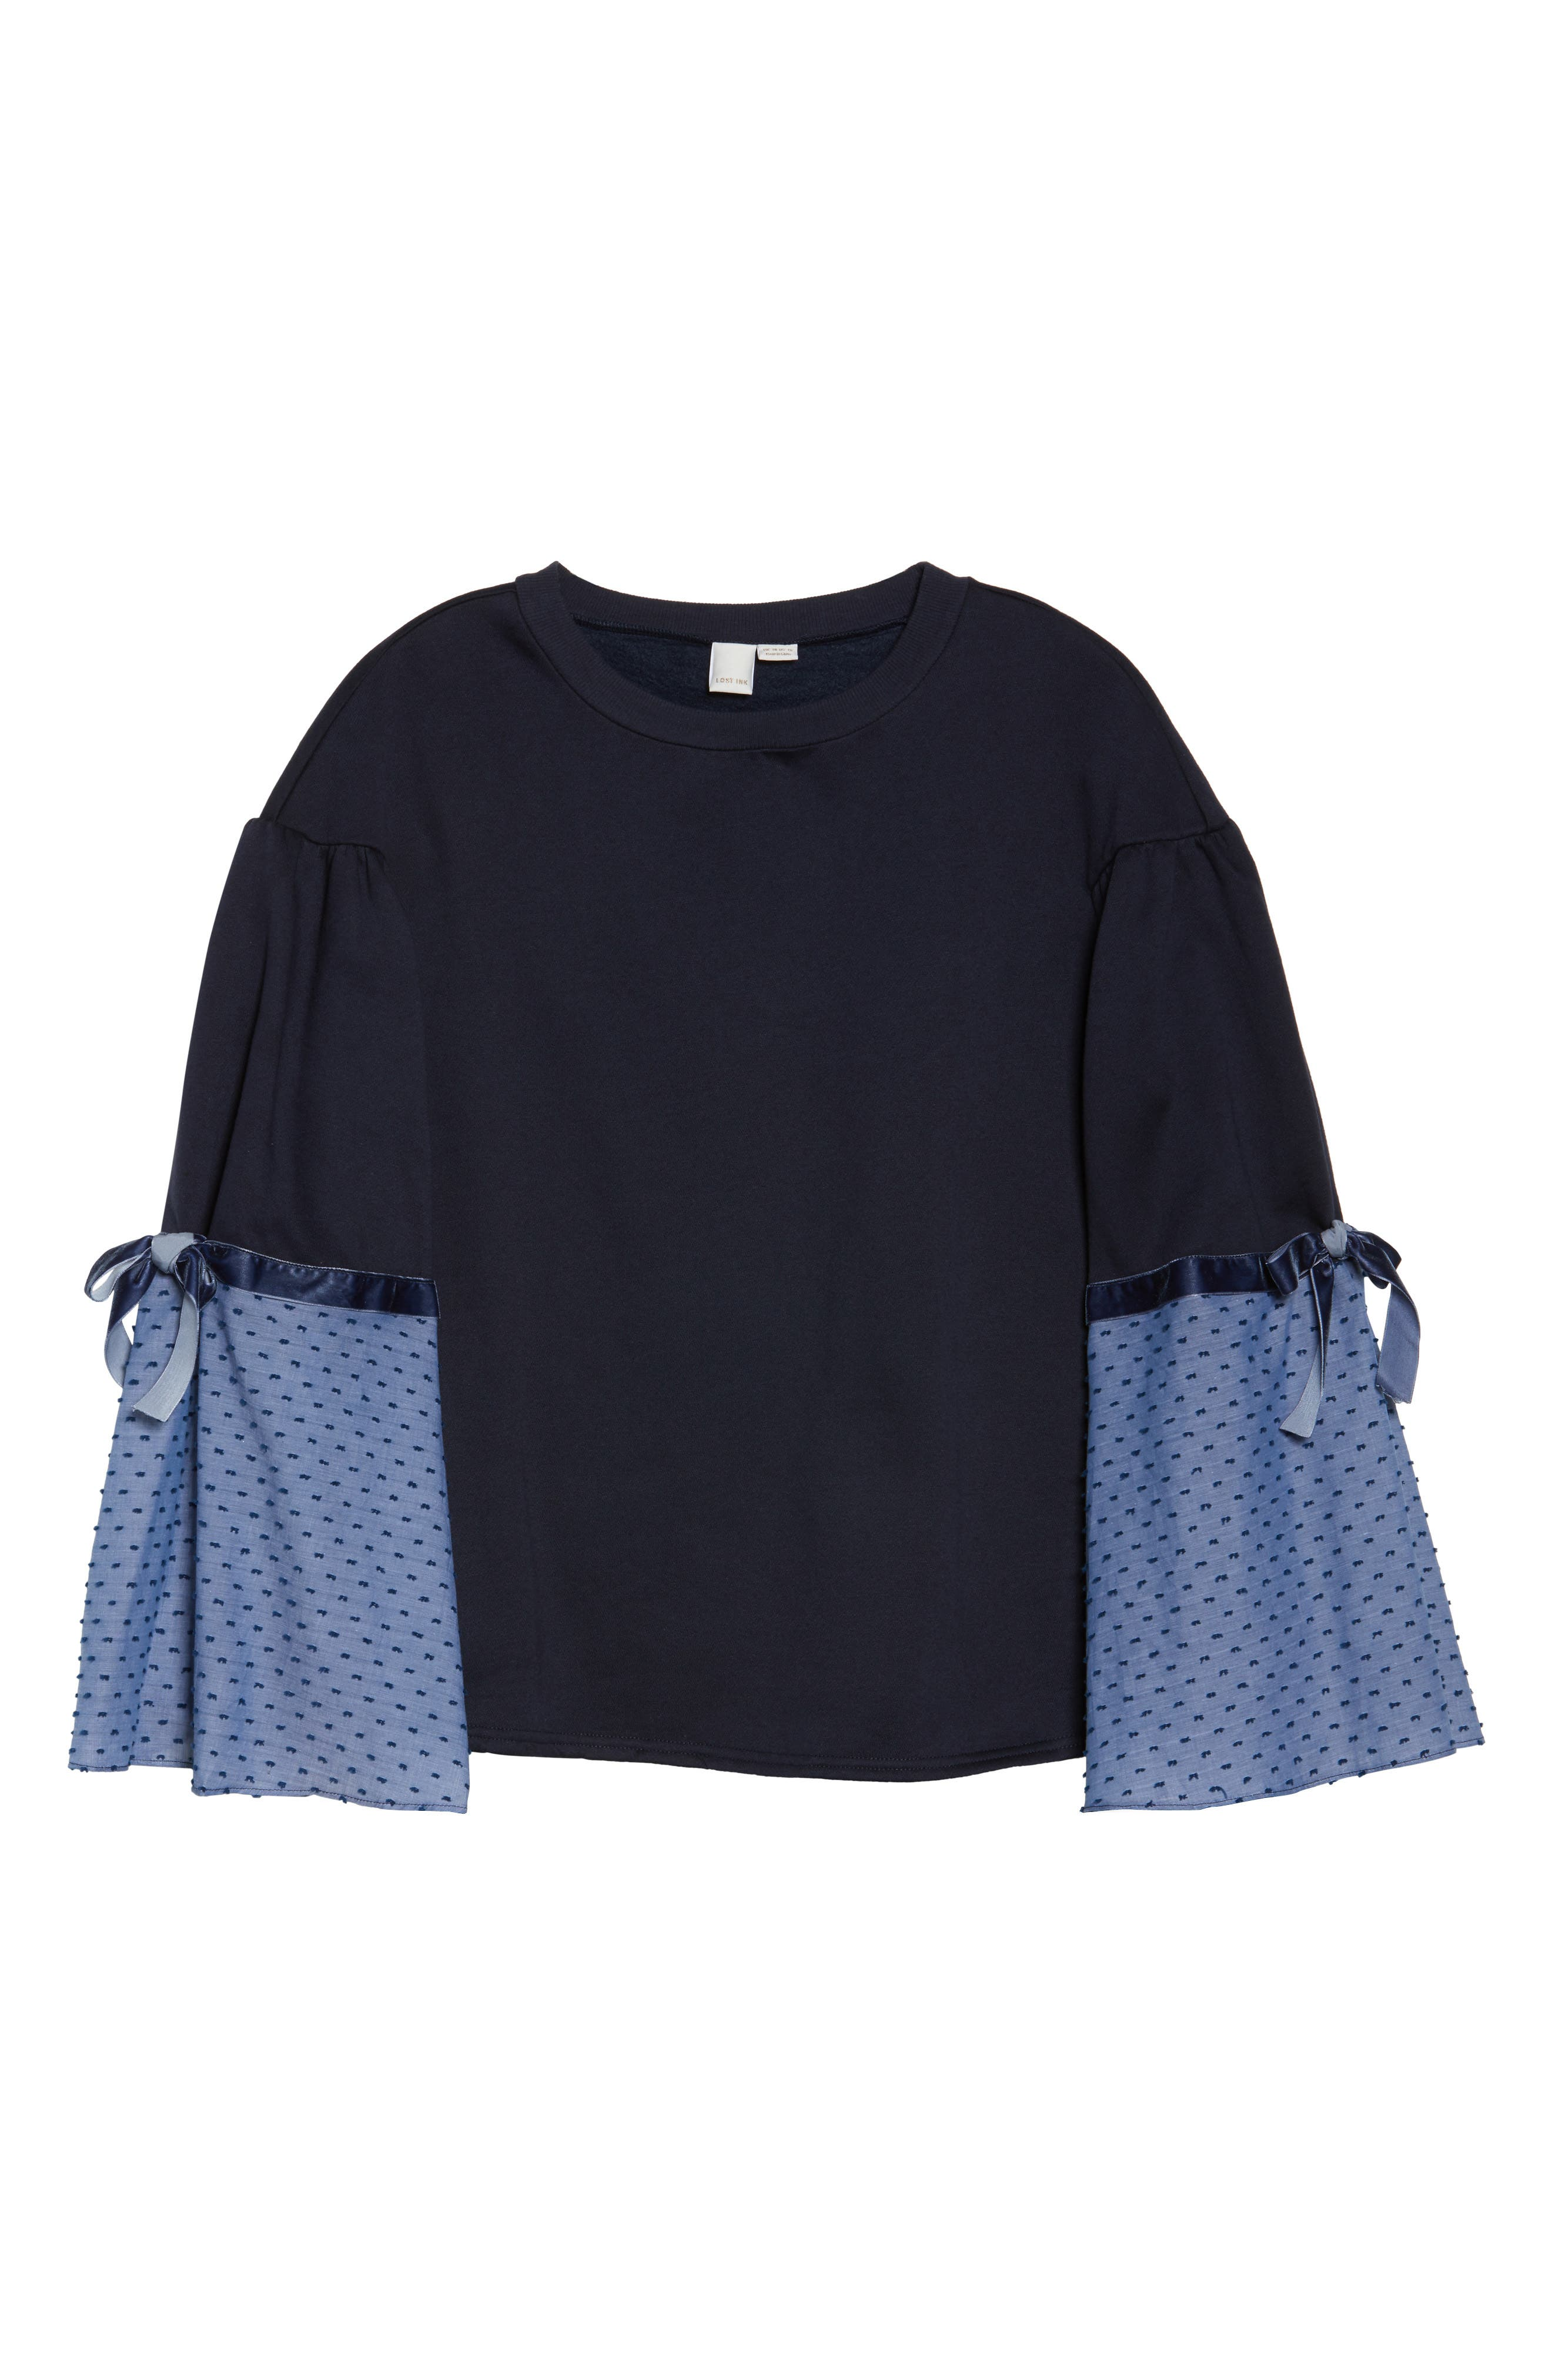 Sweatshirt with Woven Tie Sleeves,                             Alternate thumbnail 6, color,                             410